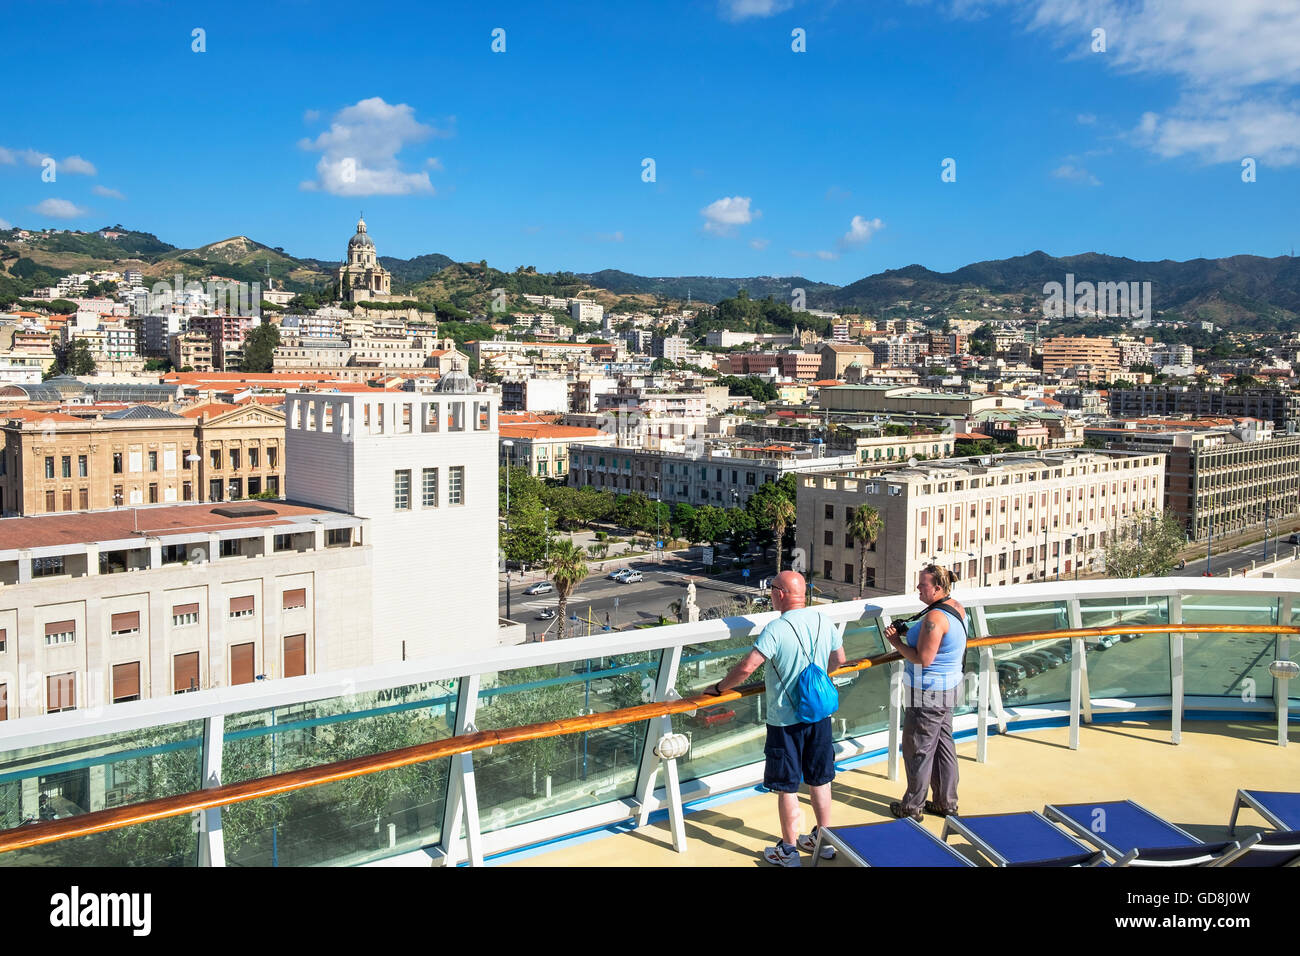 Tourists get their first view of Messina, Sicily, from a cruise ship that has just arrived in the port - Stock Image